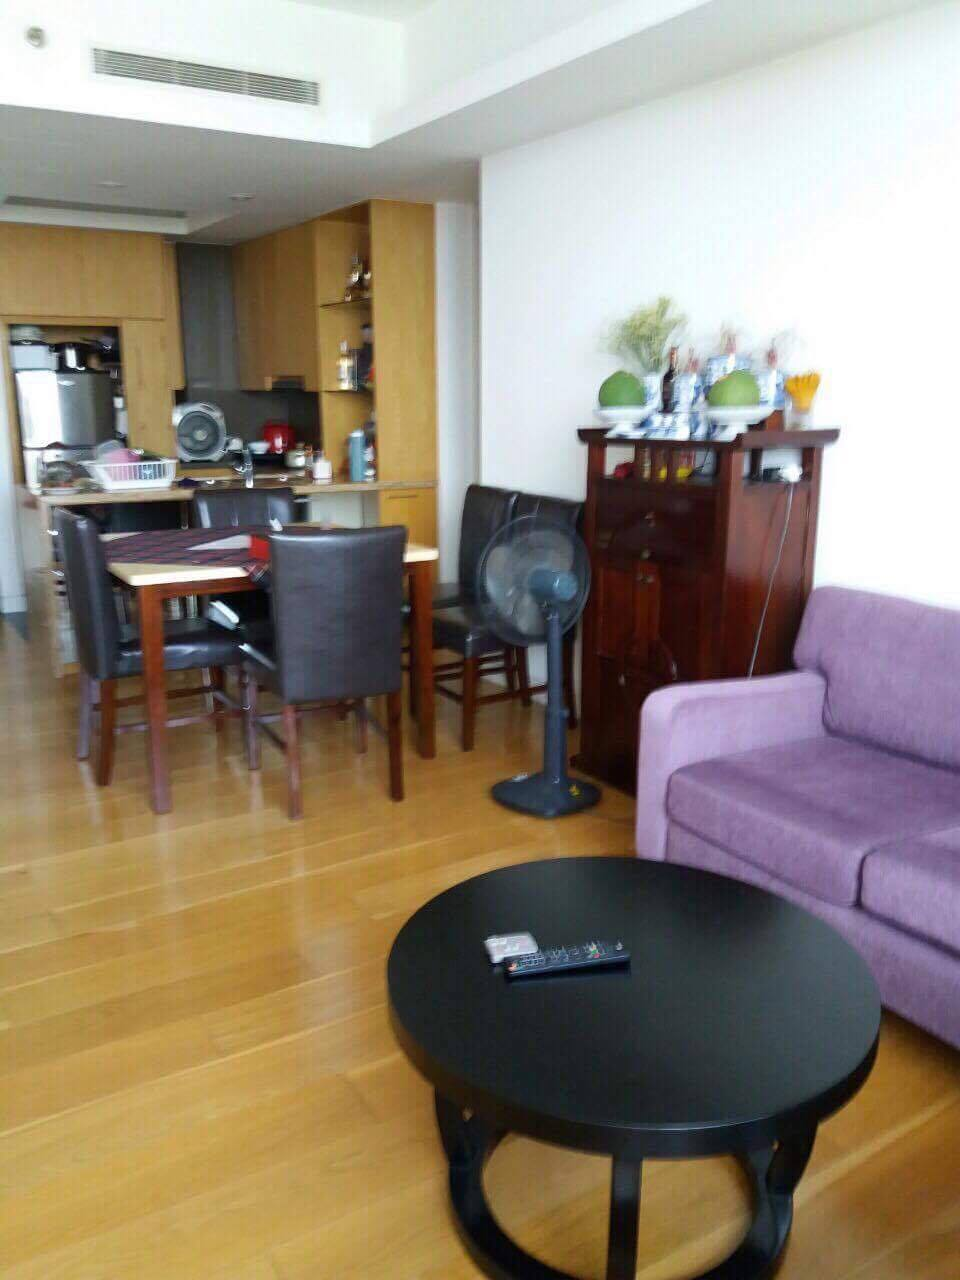 Nice apartments for lease in Xuan Thuy Street, Cau Giay District, Hanoi.